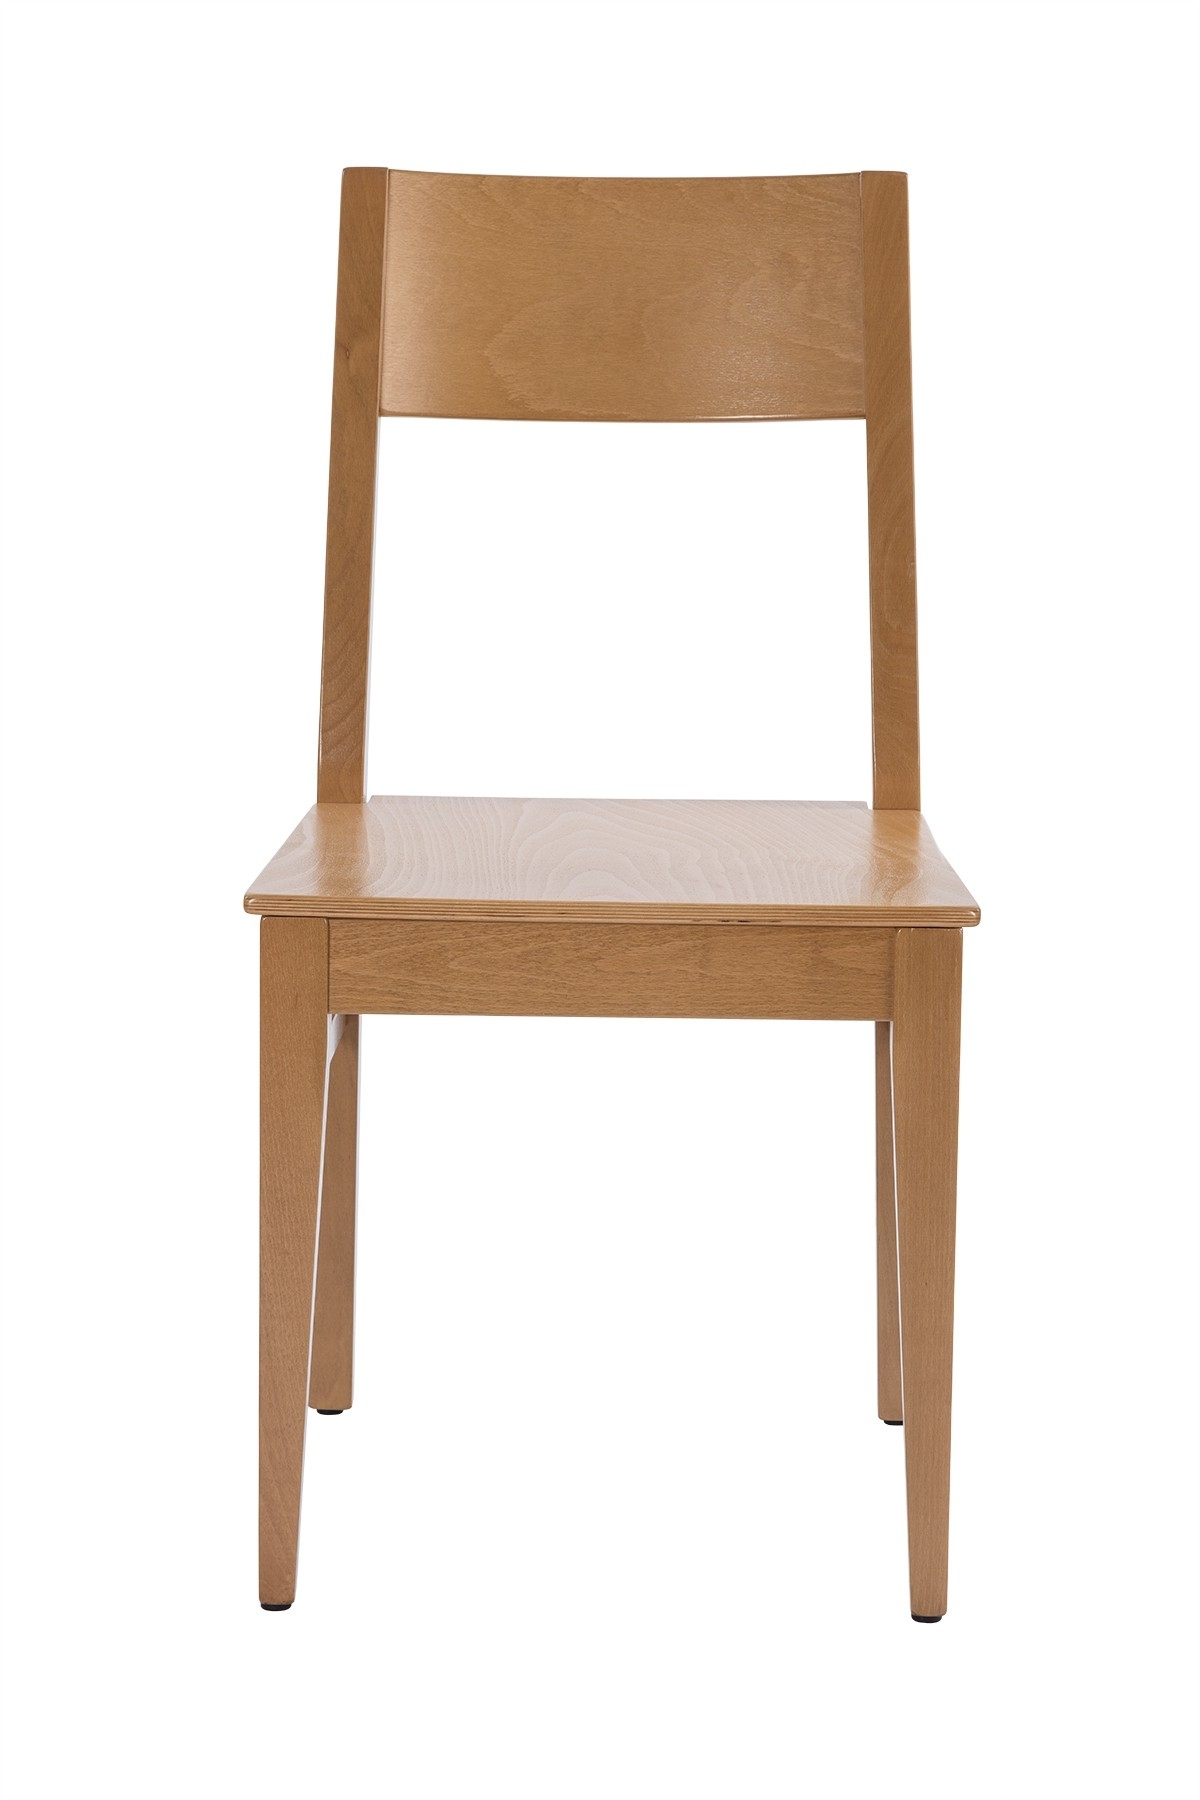 Well Known Orion Dining Chair Oak With Veneer Seat – Orion – Chairs In Orion Side Chairs (View 19 of 20)